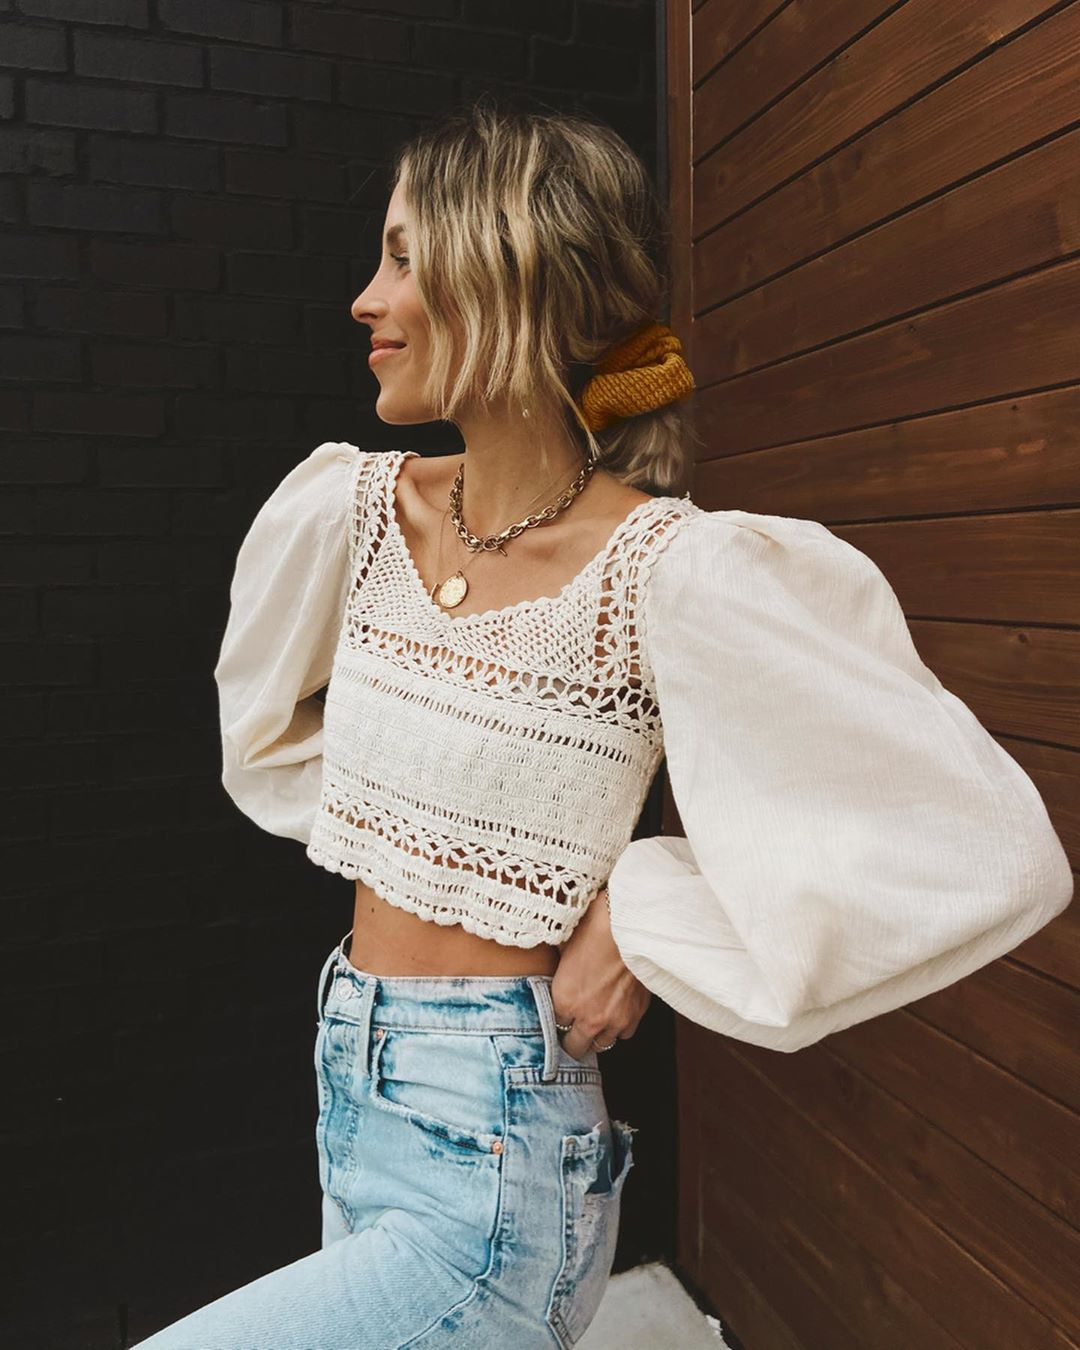 mary-lawless-lee-free-people-cynthia-crochet-cropped-top-instagram